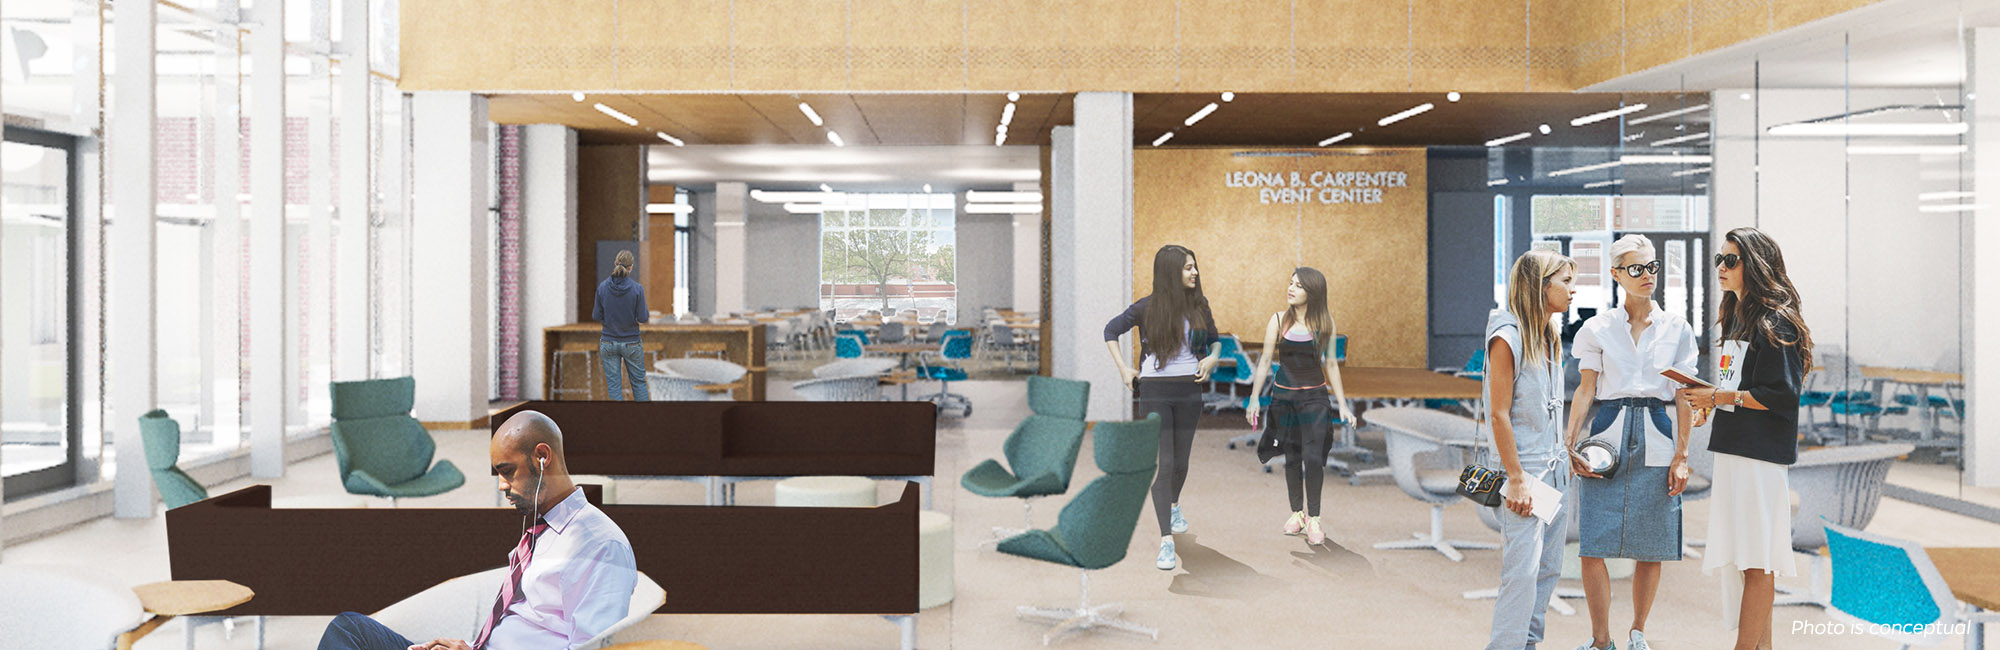 Building plans of a new space at the Johns Hopkins School of Nursing.